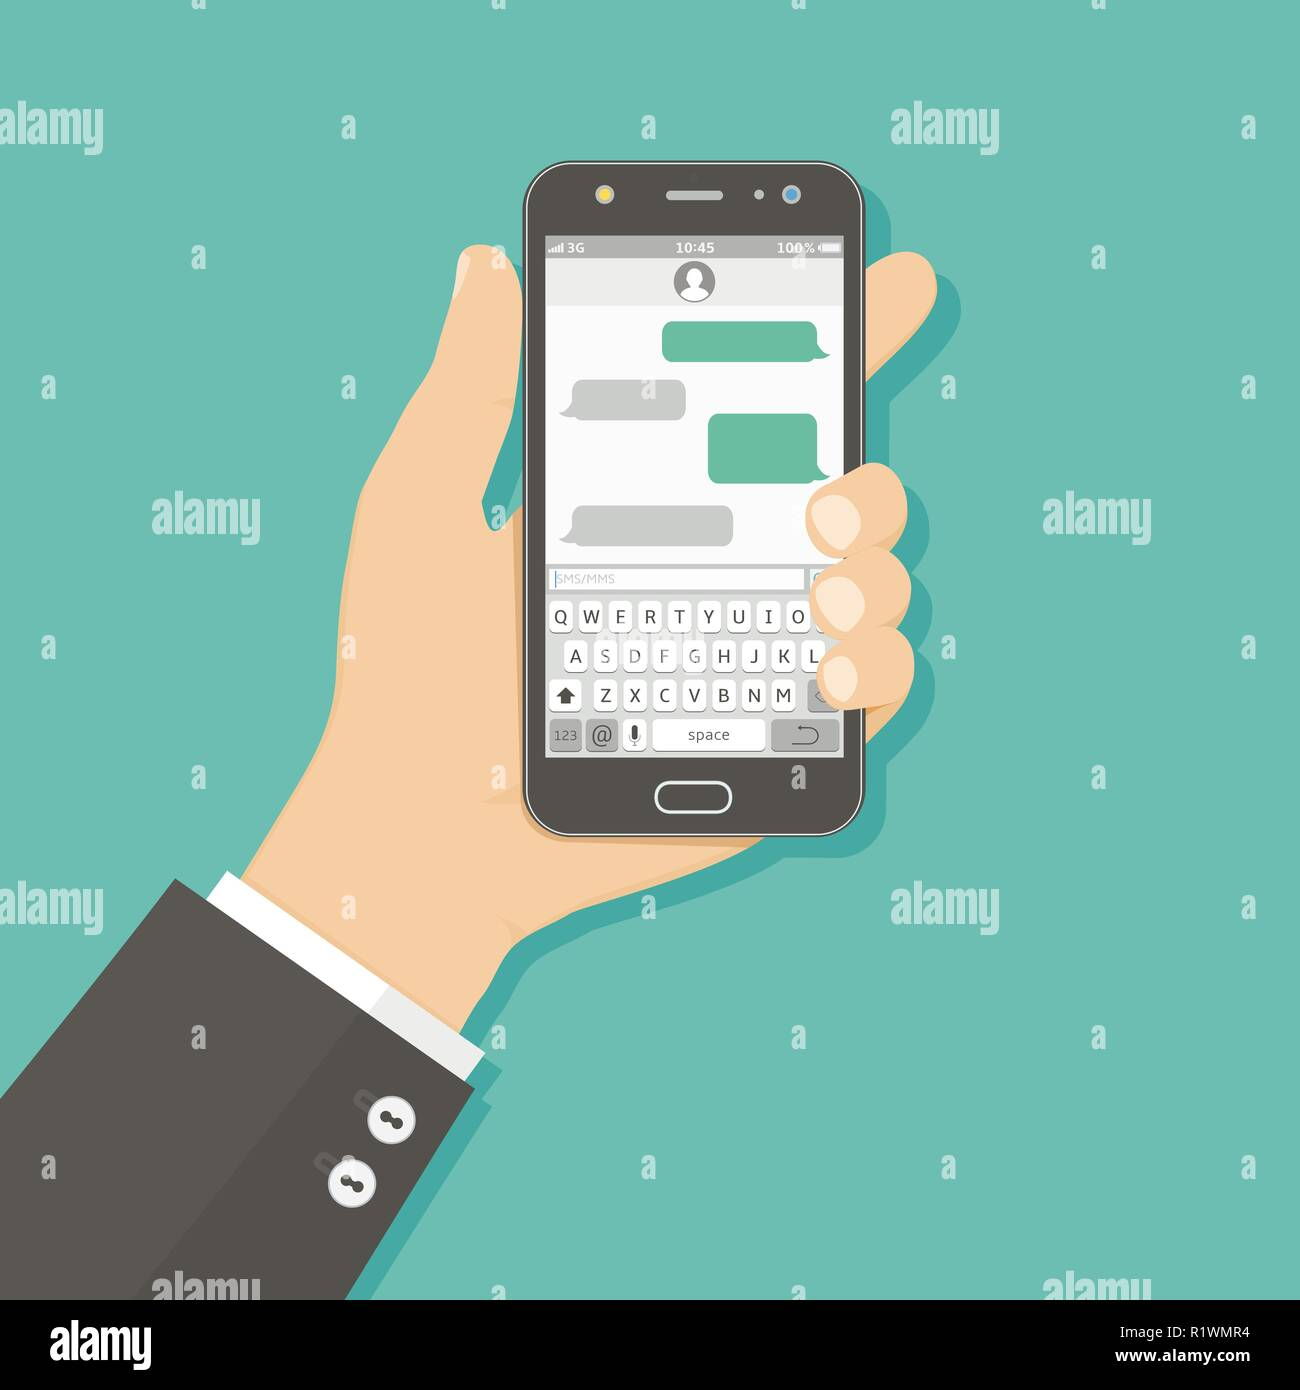 Hand holding smartphone with messaging sms app - Stock Image